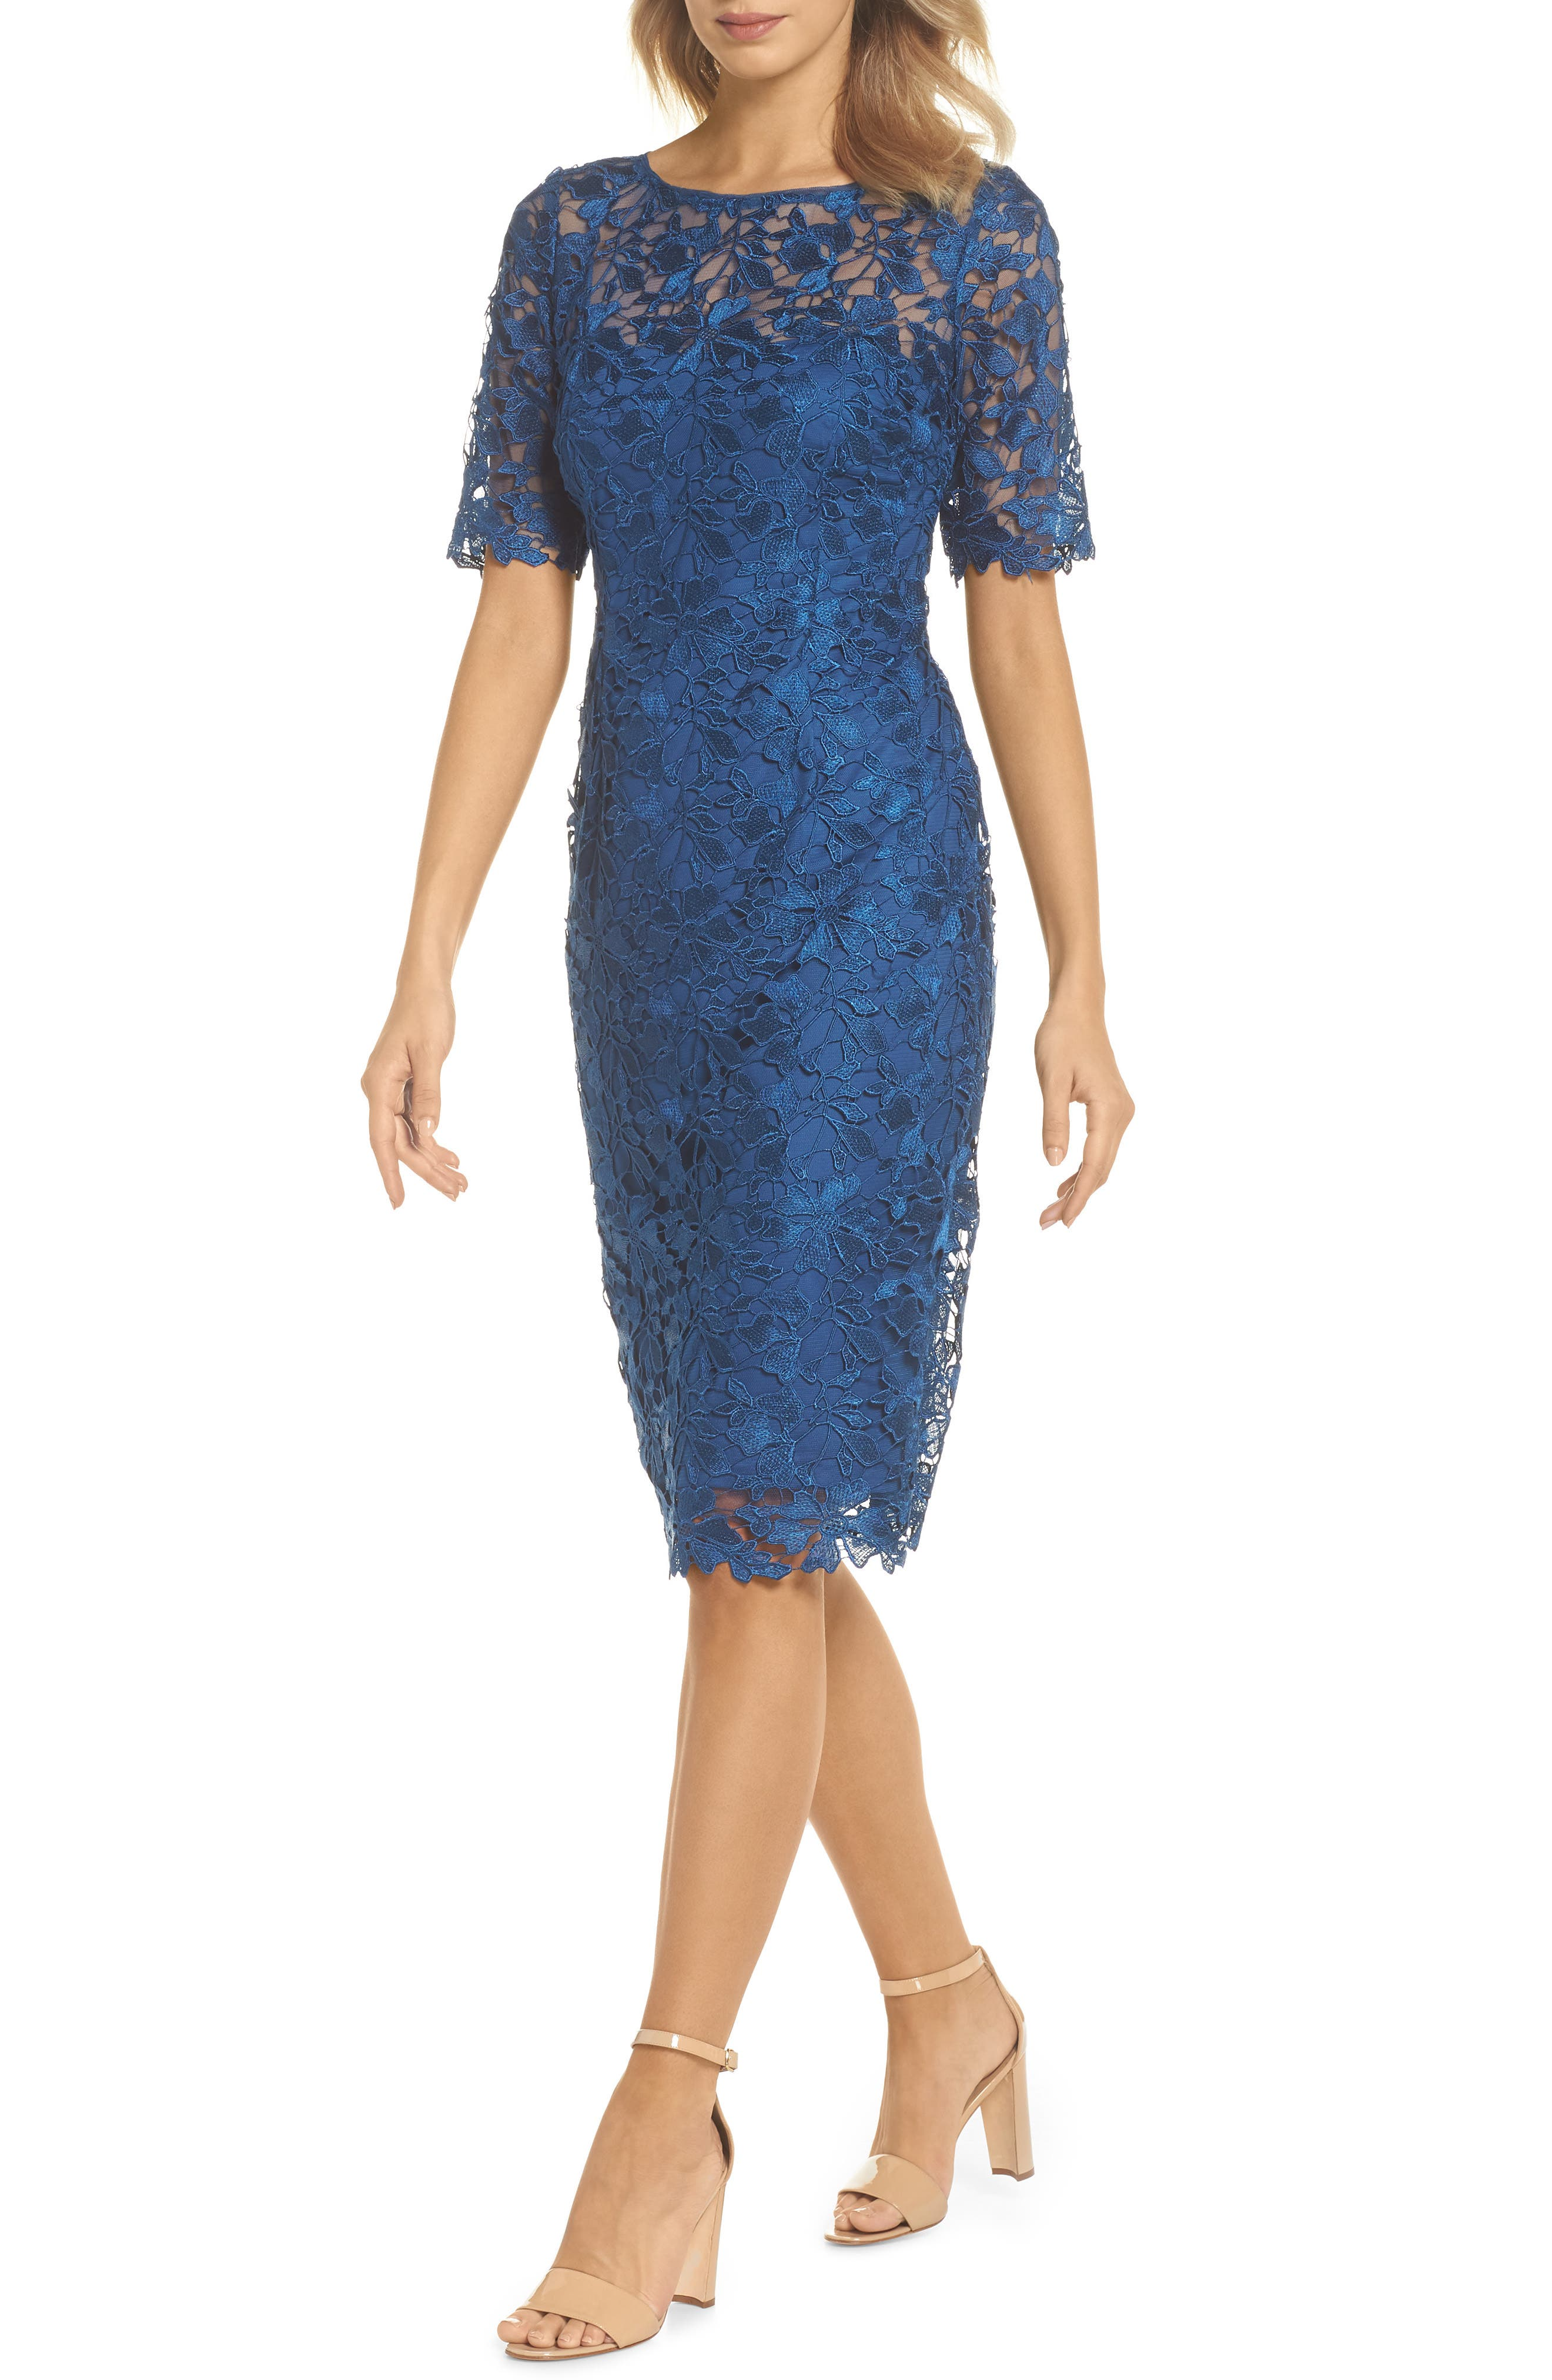 ADRIANNA PAPELL Guipure Lace Sheath Dress, Main, color, 413